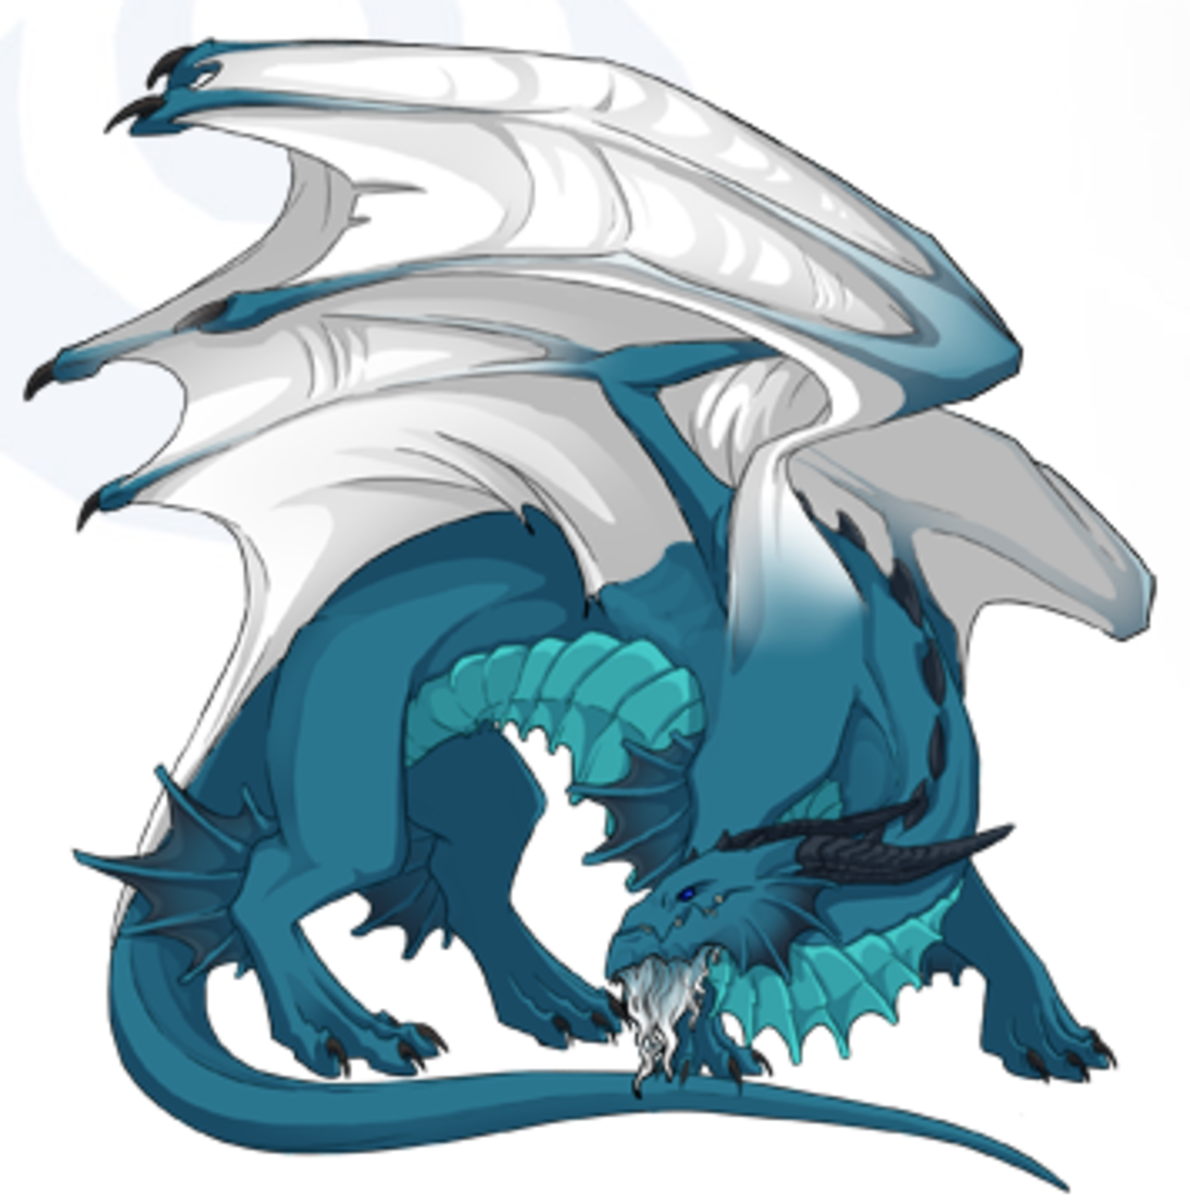 My very own Guardian Dragon, progenitor of my clan. What is this all about? Well, read on and learn what makes progenitors unique!